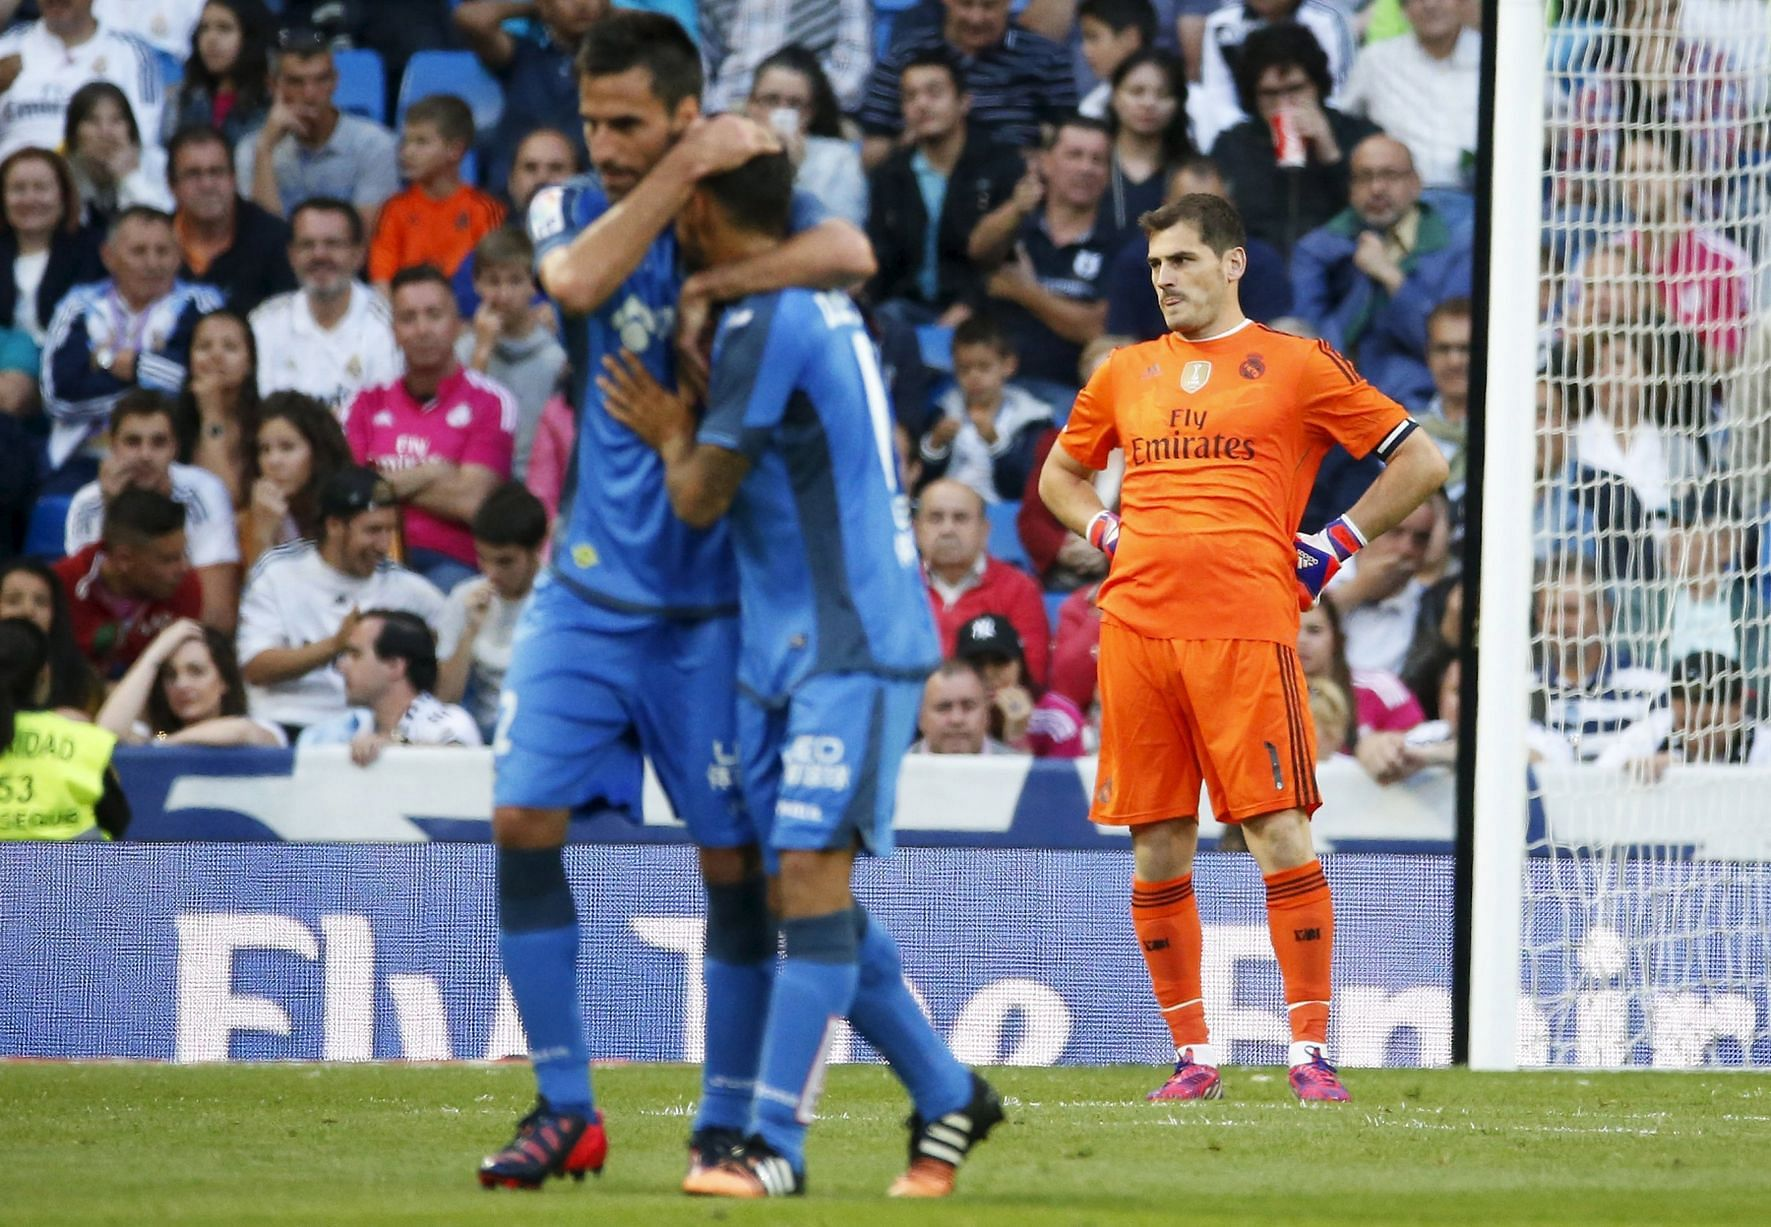 Getafe Vs Real Madrid: Real Madrid 7-3 Getafe: 5 Talking Points